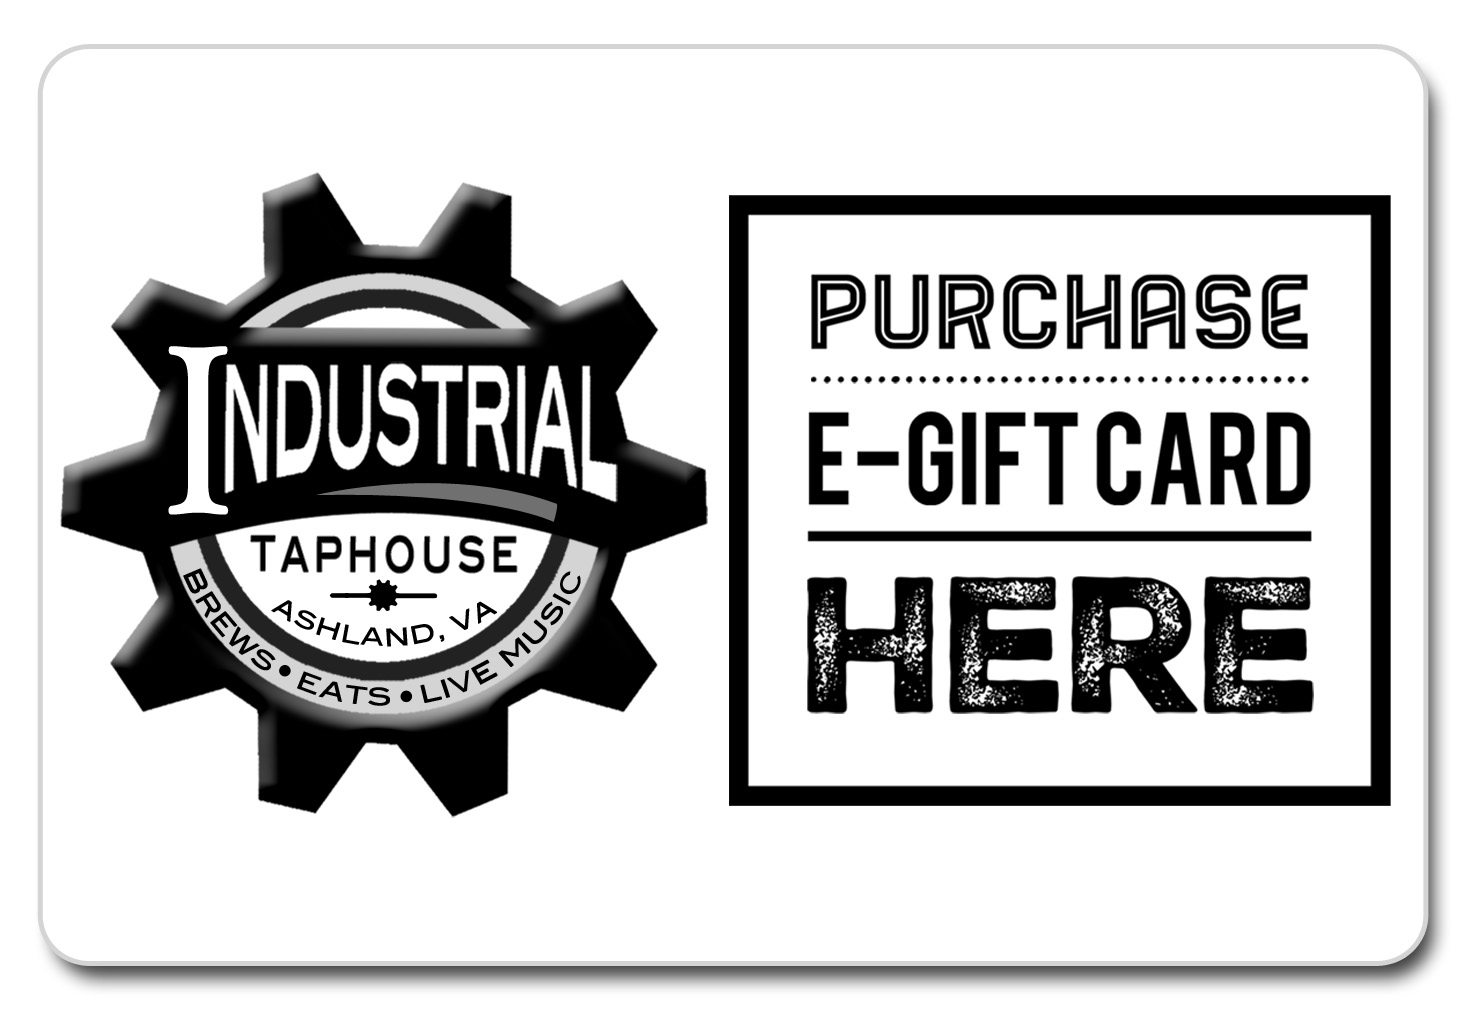 gift card, industrial taphouse, craft beer, burgers, best restaurant, cotu, ashland va, rva, richmond va